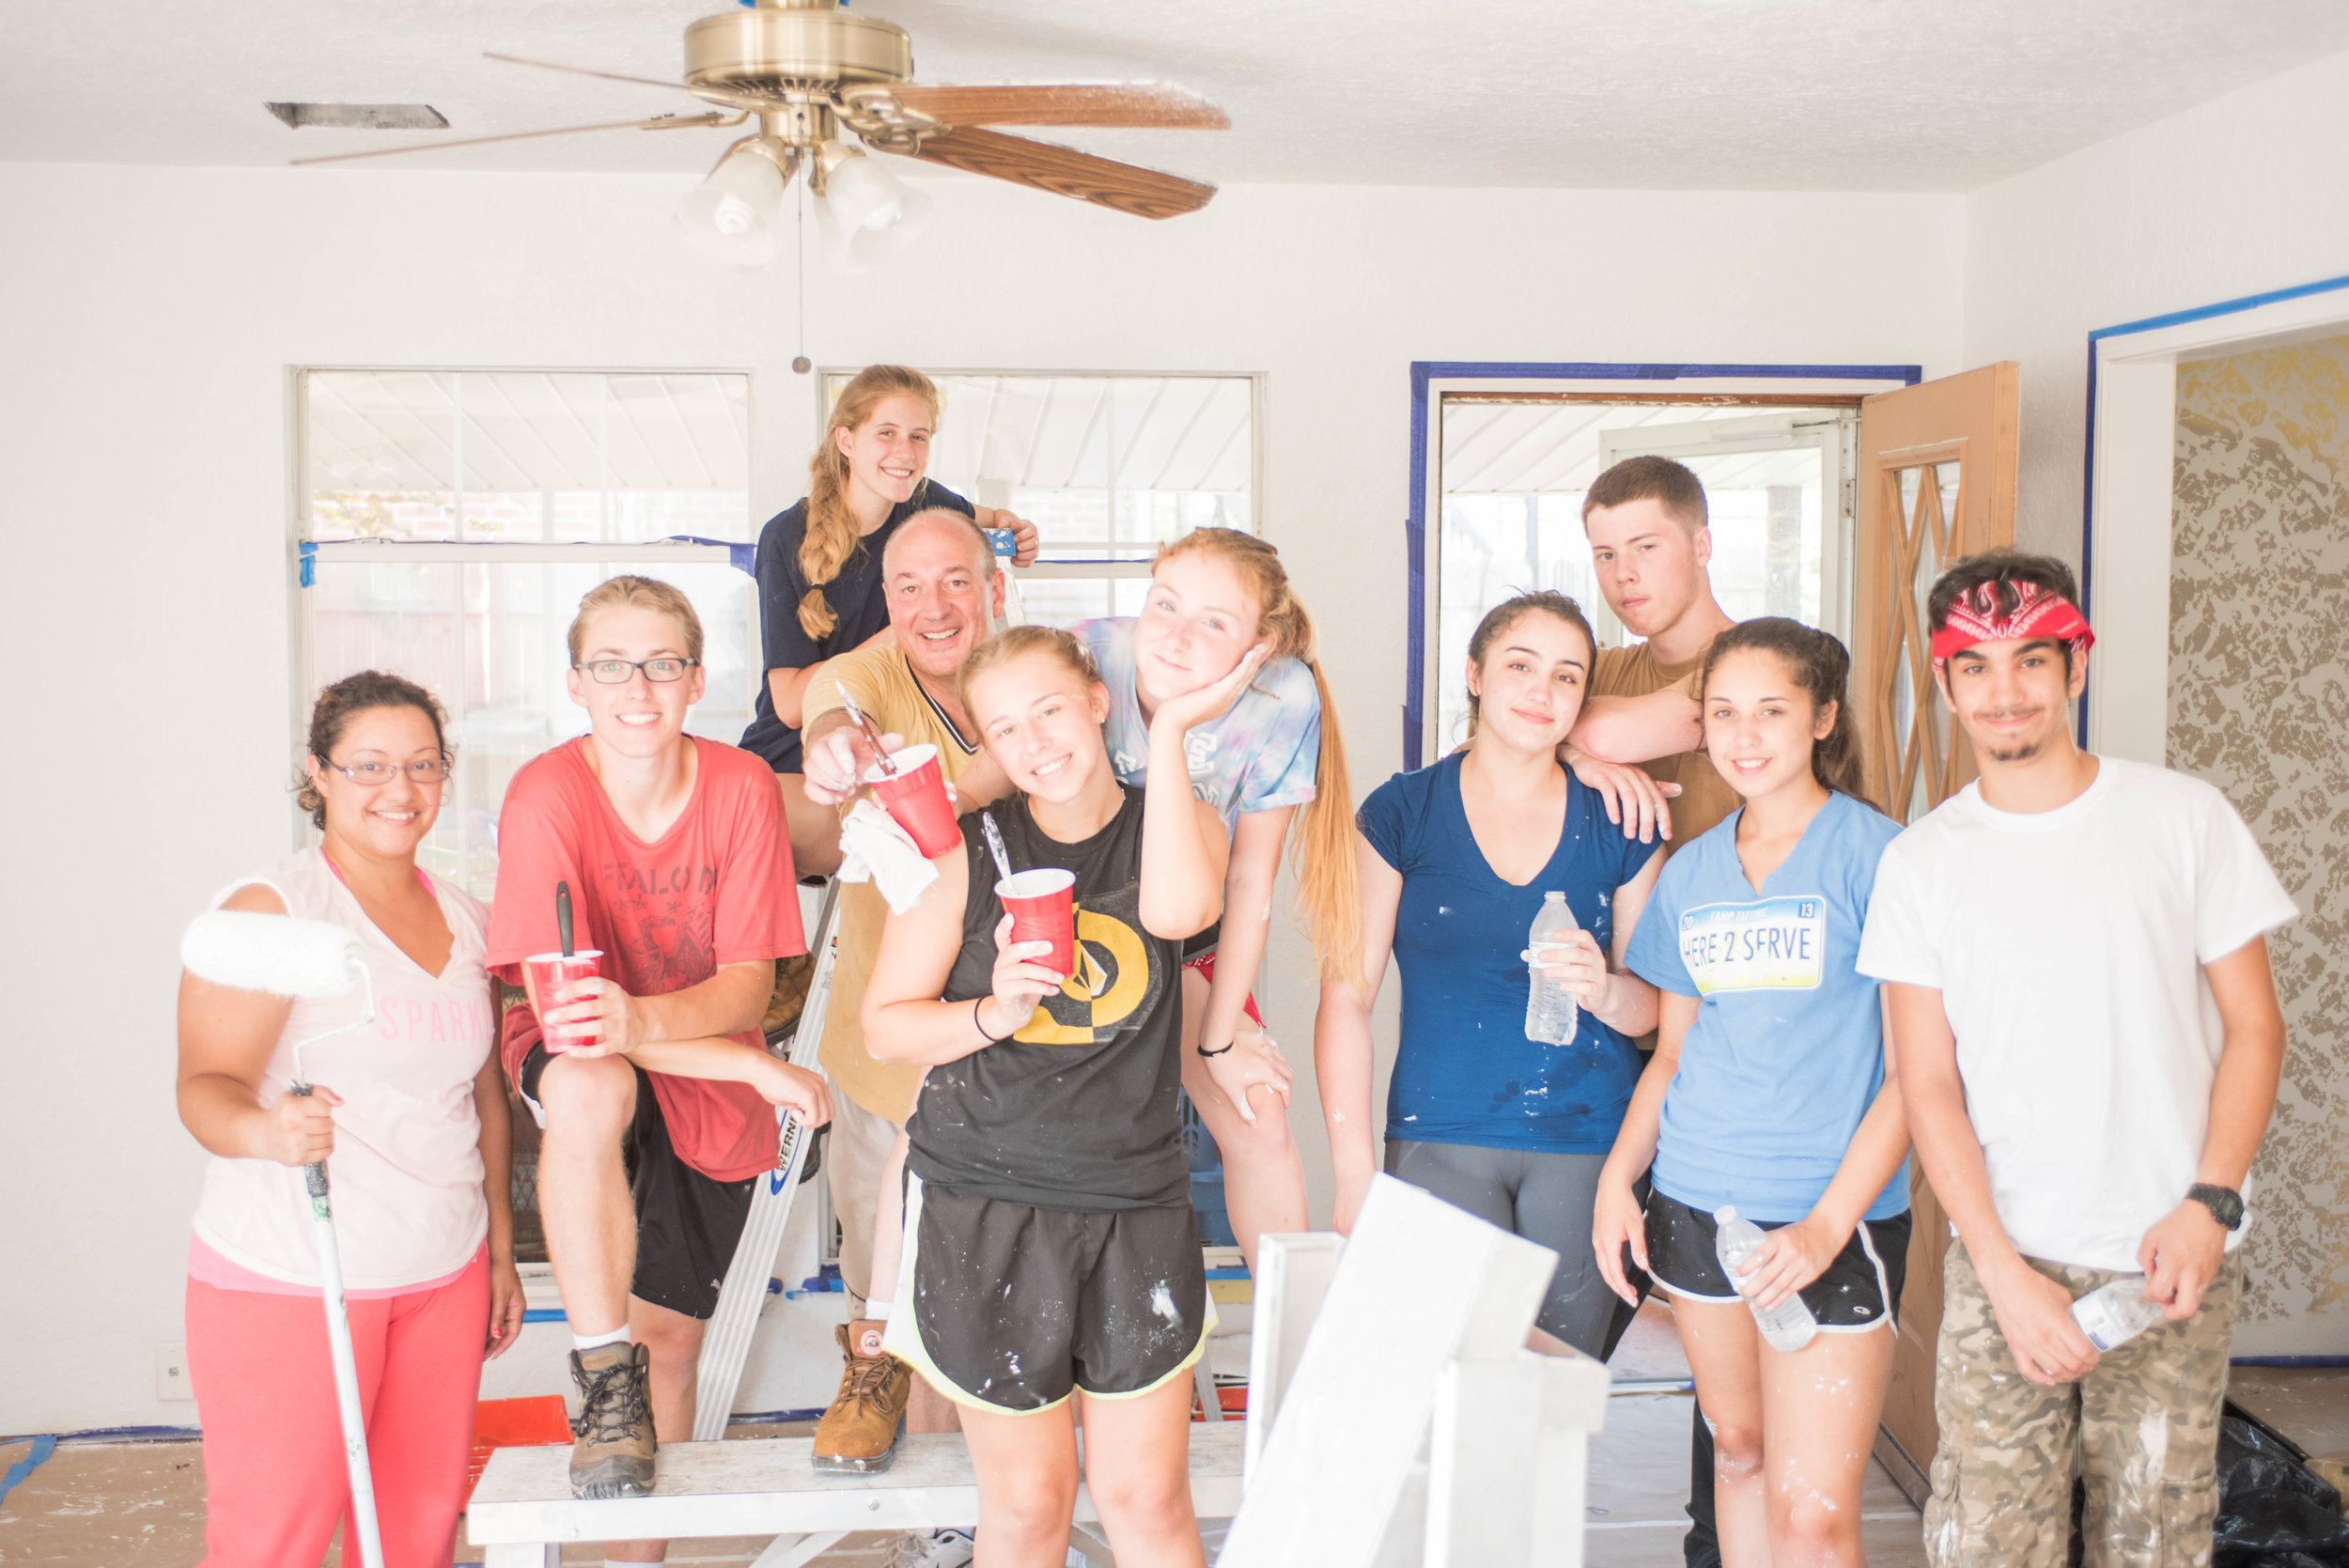 Serve More volunteers repair the interior of an Oklahoma City home after flood and tornado damage.